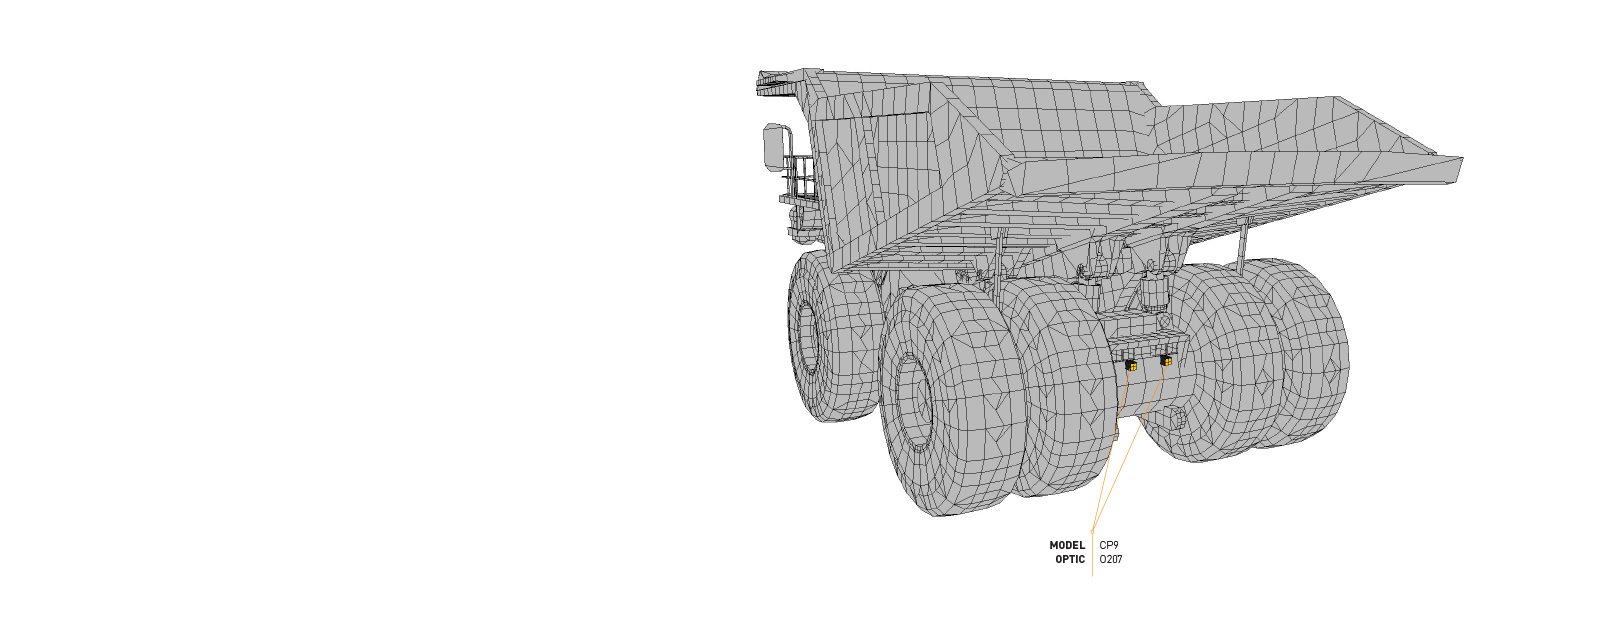 This Lighting Design Simulation Report made by Coolon illustrates how the CP9 LED Floodlight improves the light output of a Liebherr T282B mining truck.